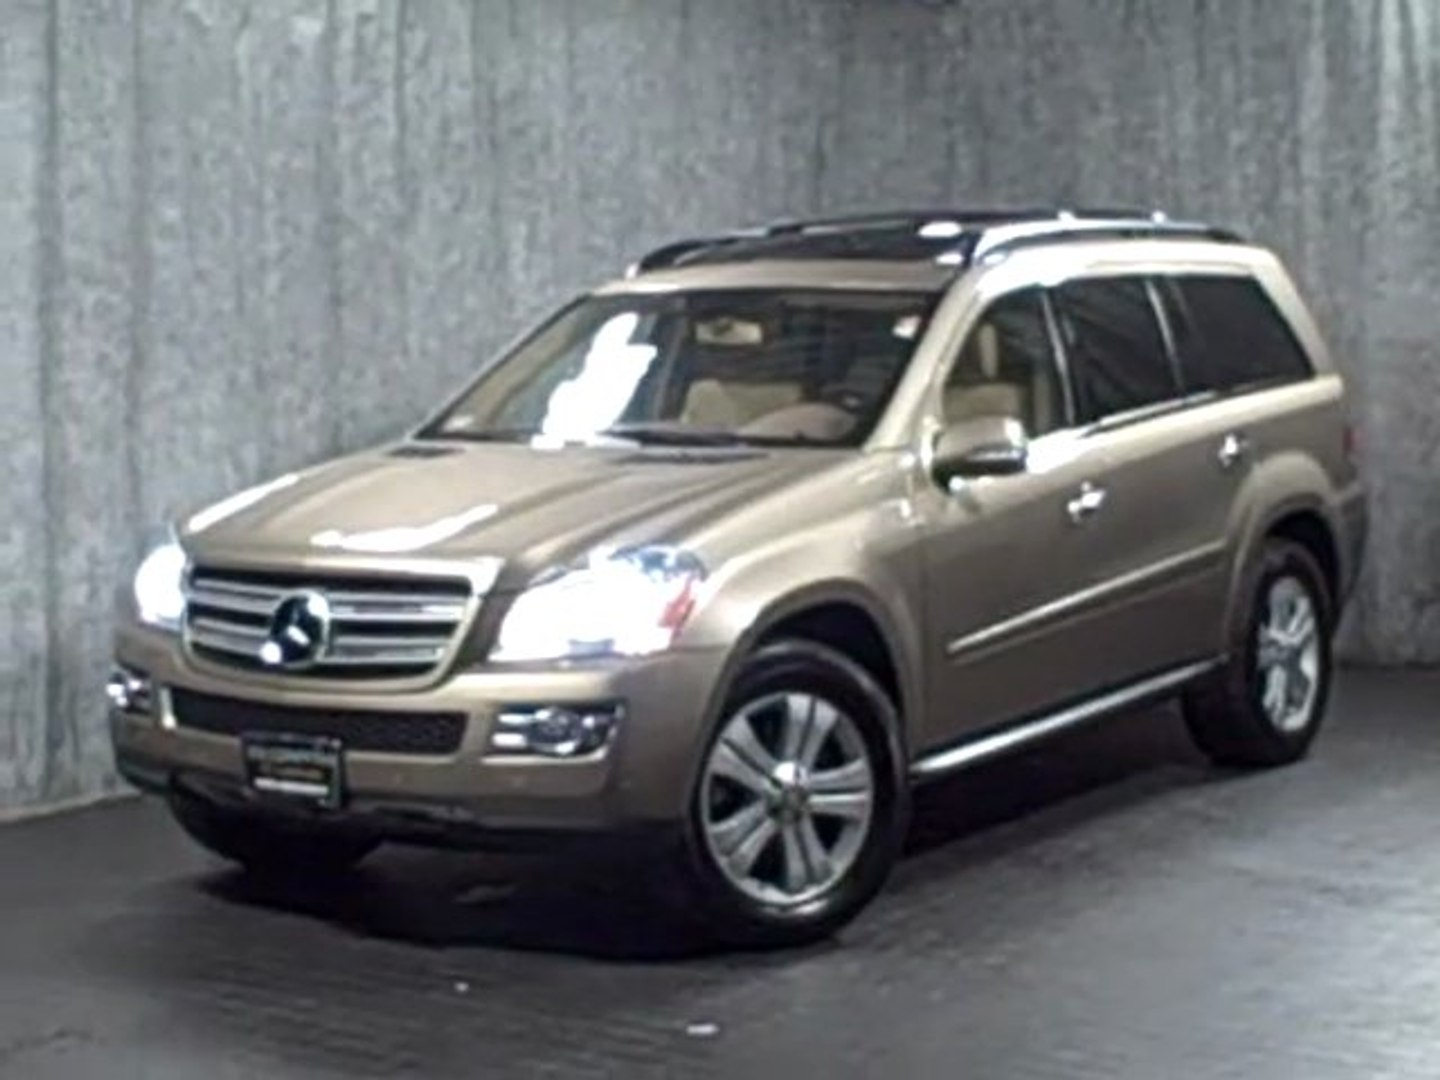 2008 Mercedes Benz GL450 4Matic!